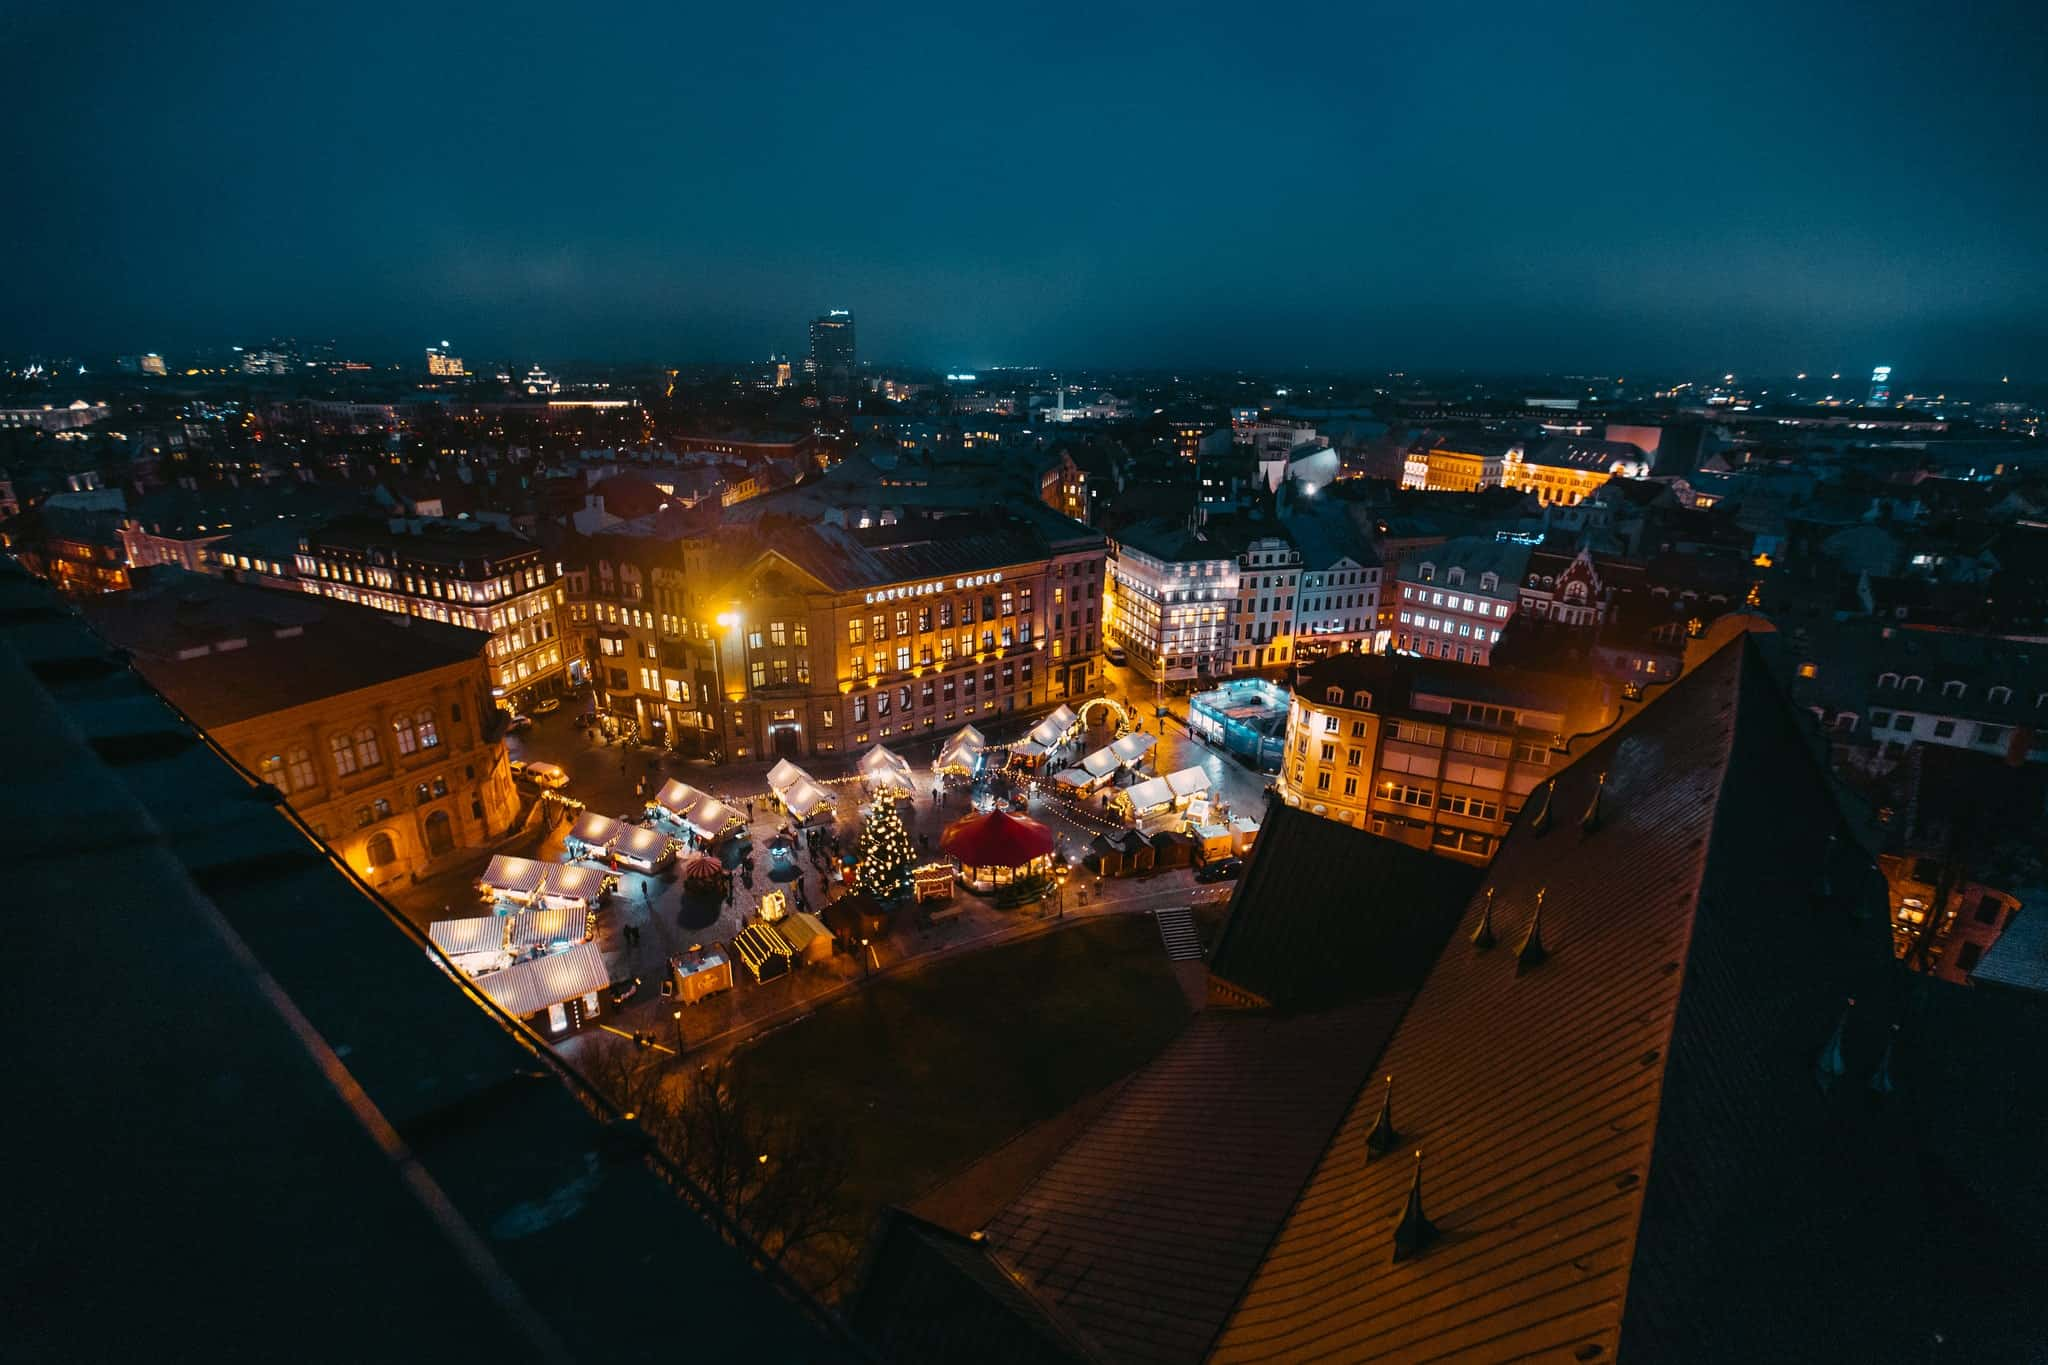 The Ultimate Europe Christkindlmarket Bucket List | Discover the most magical Christkindlmarkets (Christmas markets) in Europe with this bucket list guide to the best holiday markets from Edinburgh to Italy! #christmasmarkets #europechristmas #holidaymarket #christmasineurope #christmas #holidays #wintertravel